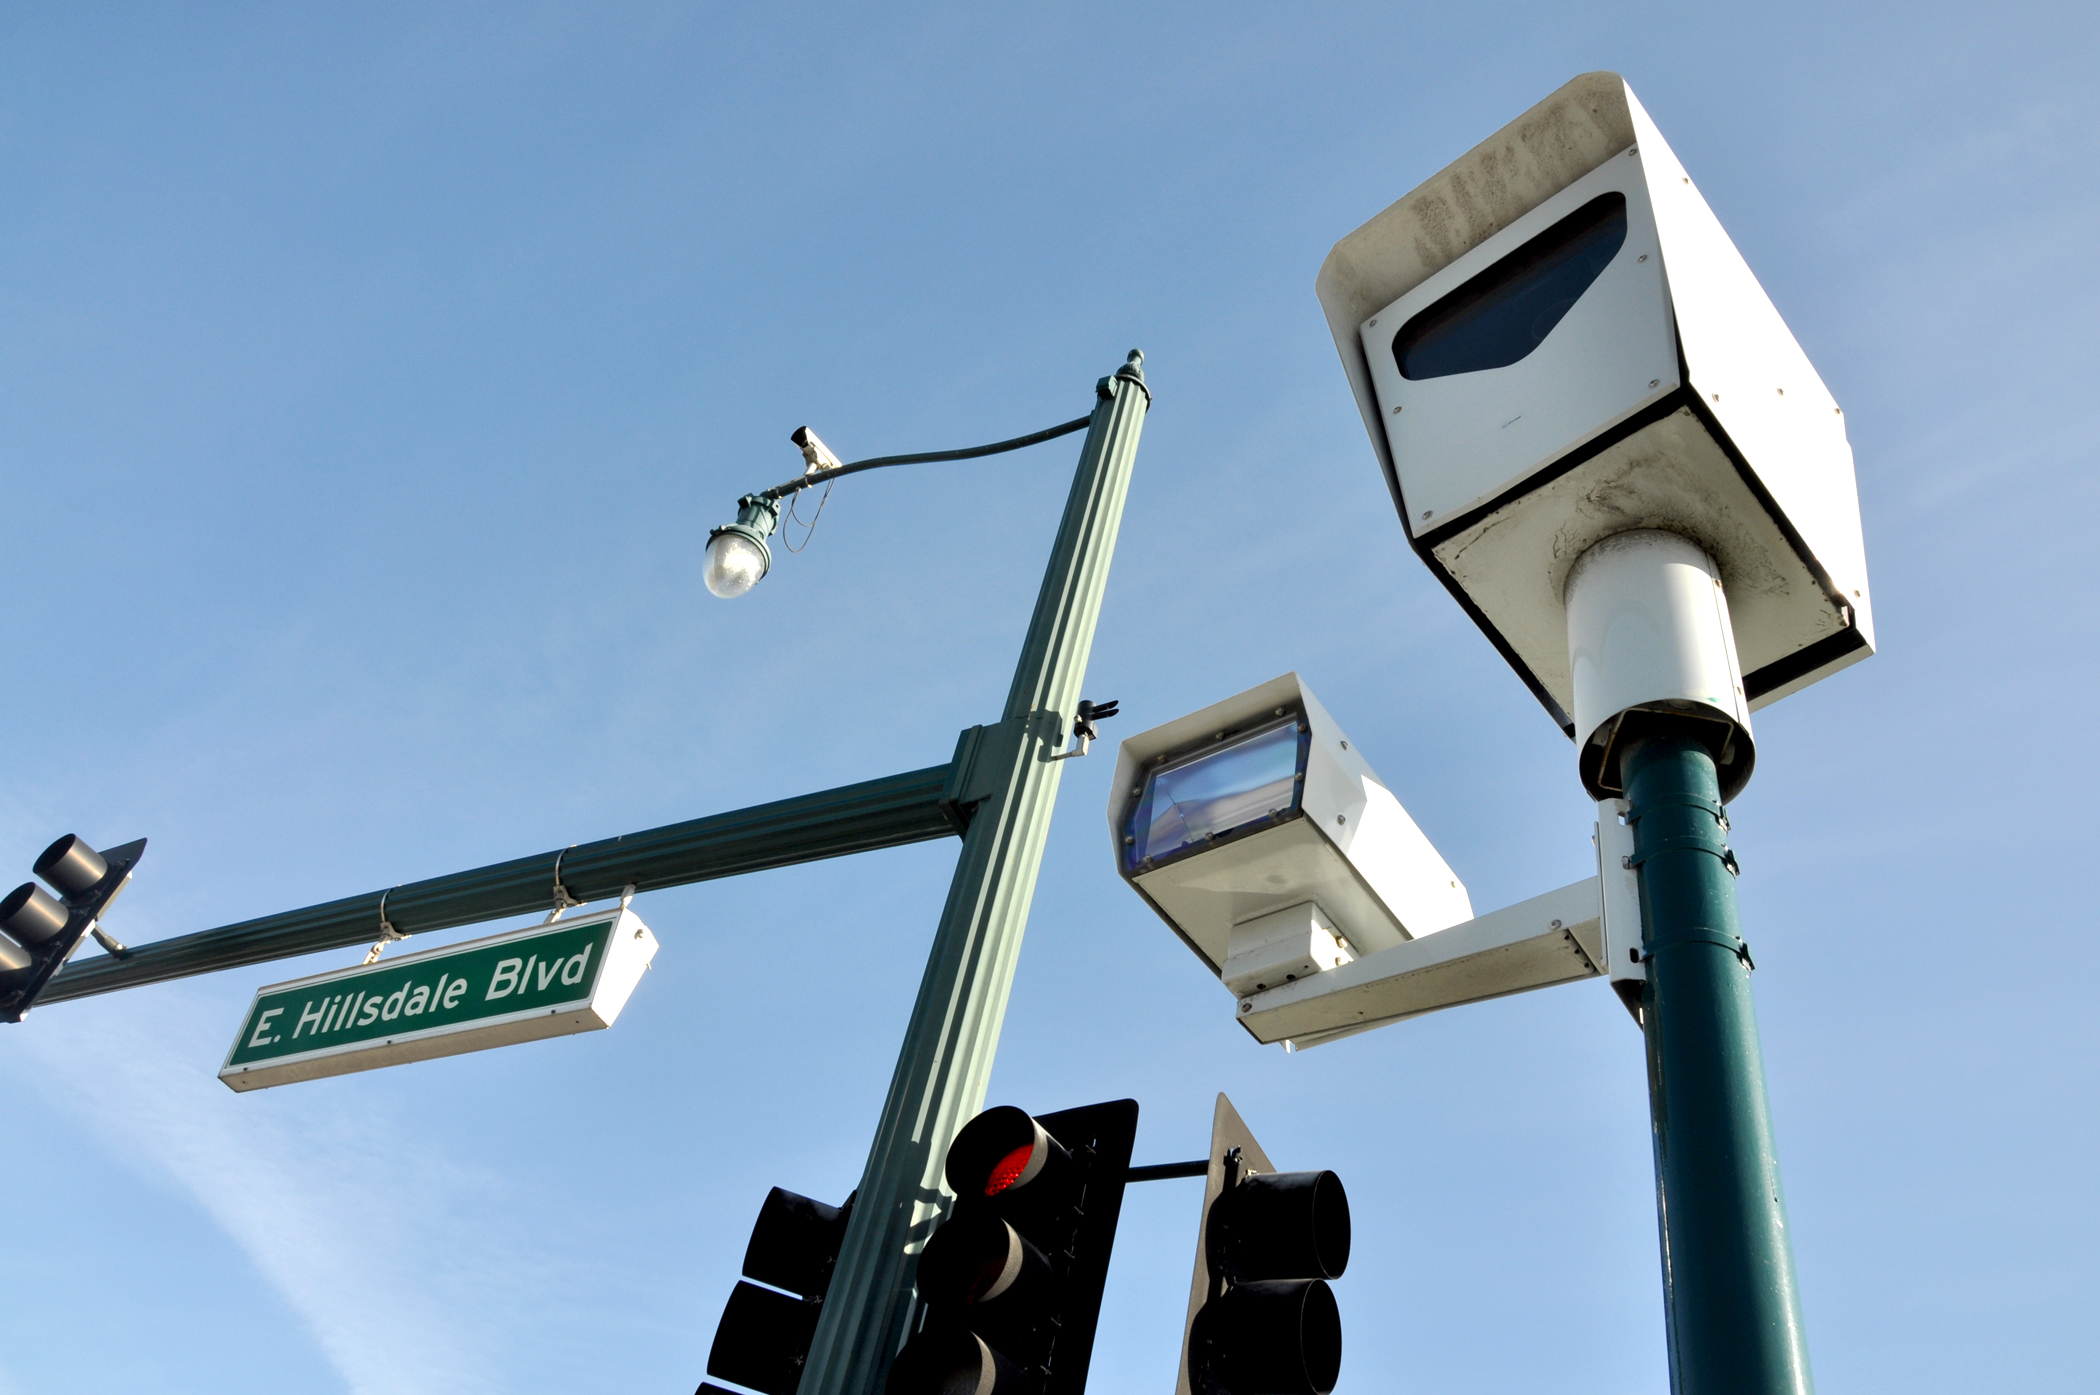 City ends red-light camera program, will dismiss or refund 1,000 tickets -  Palo Alto Daily Post